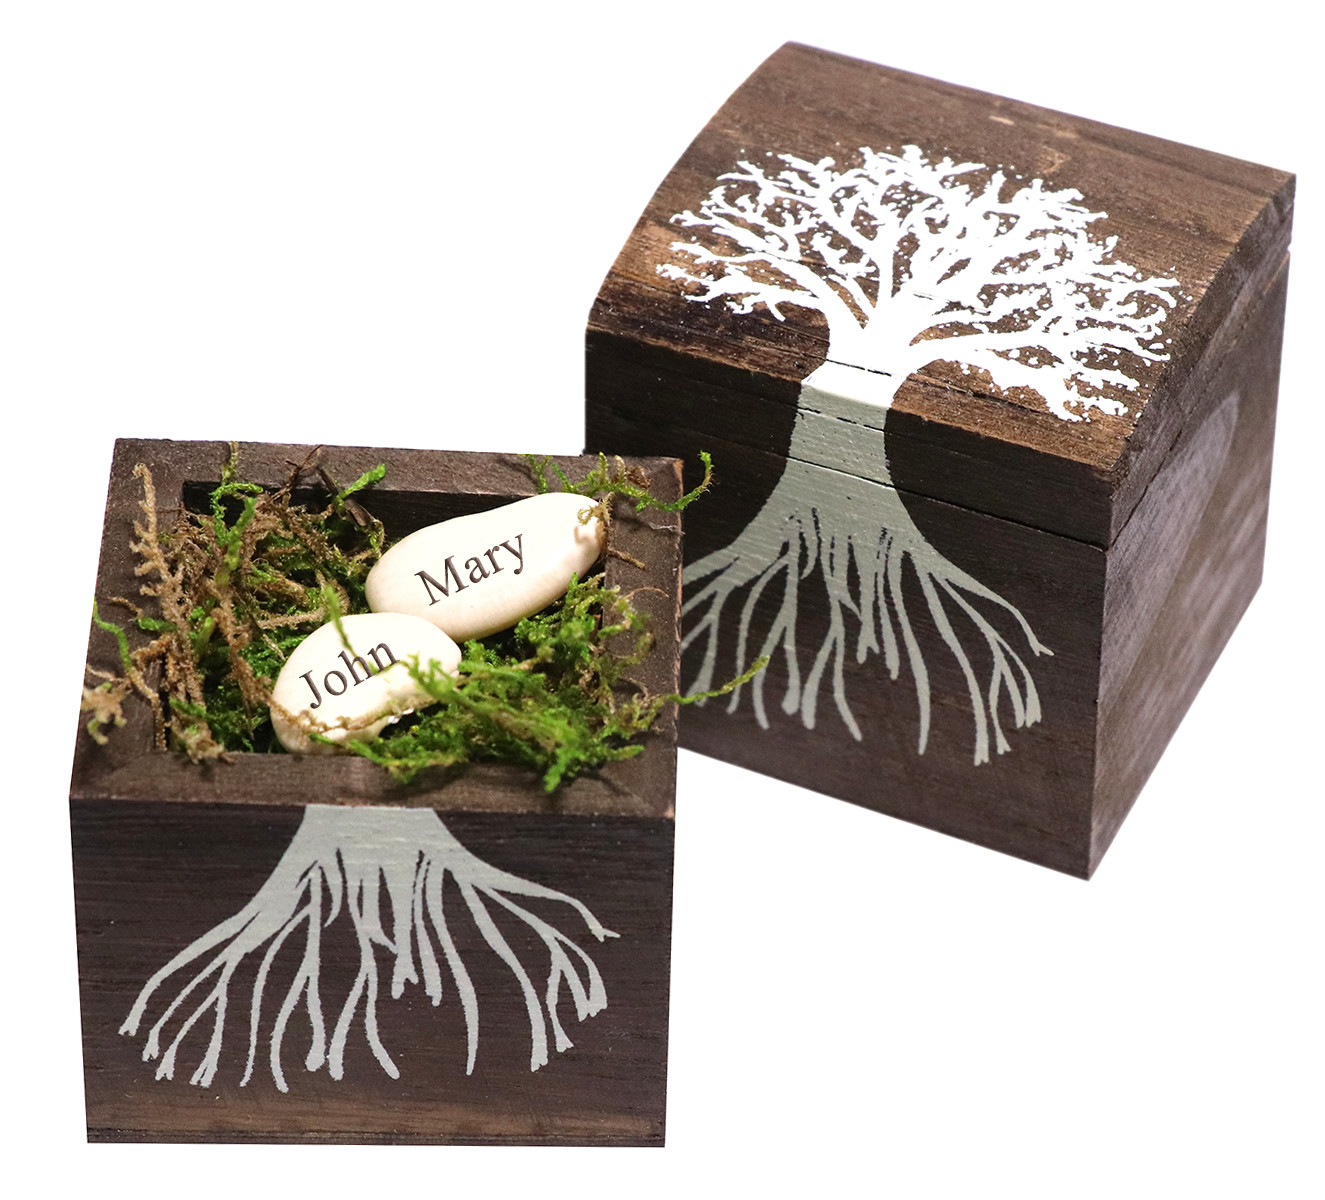 Growing Together Wishing Beans in a Tree Wood Box + Green Grass Moss